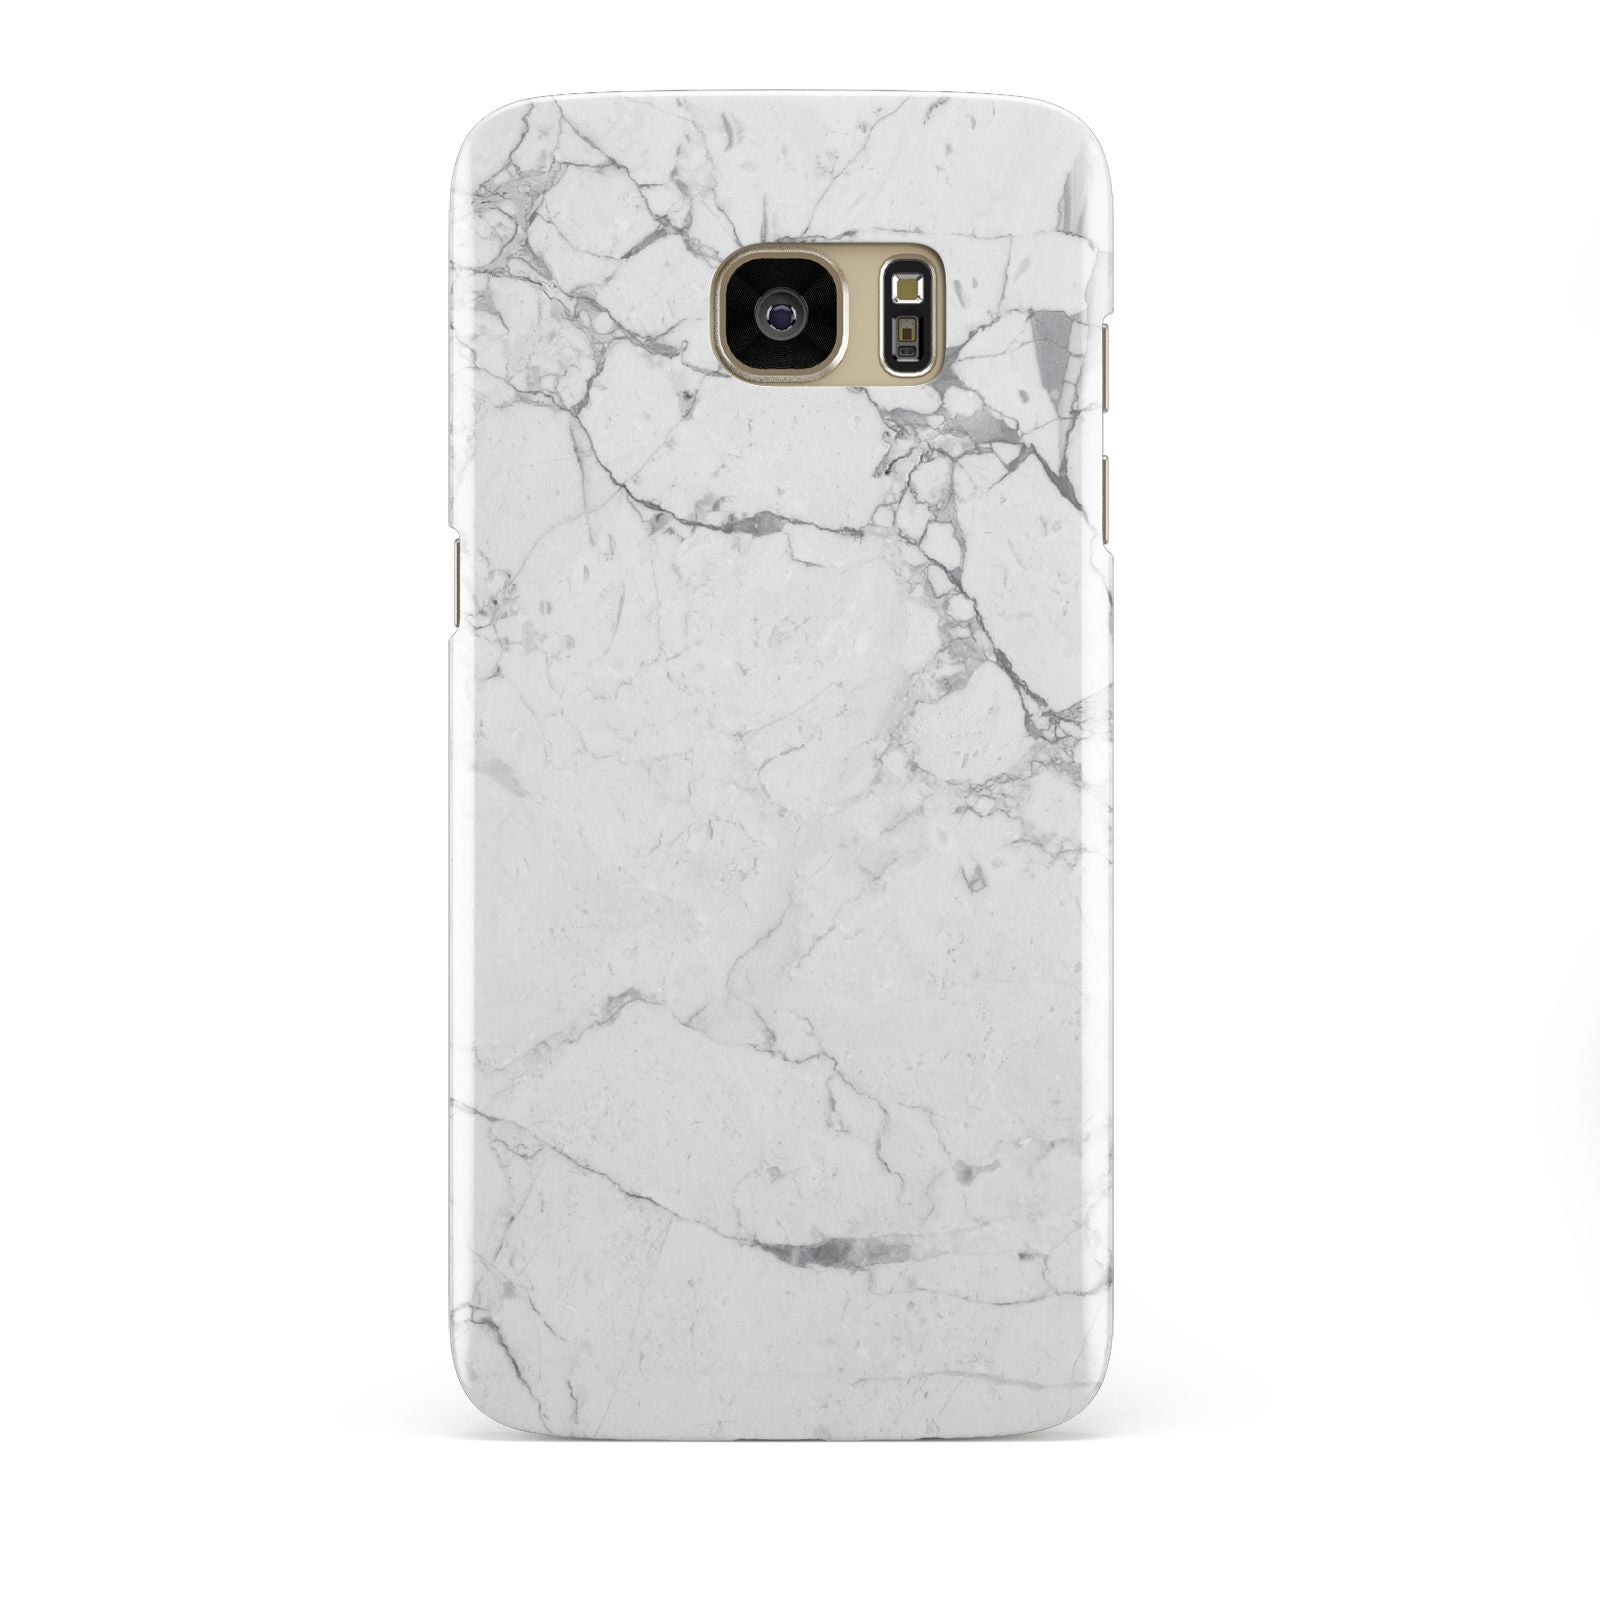 Faux Marble Effect Grey White Samsung Galaxy S7 Edge Case